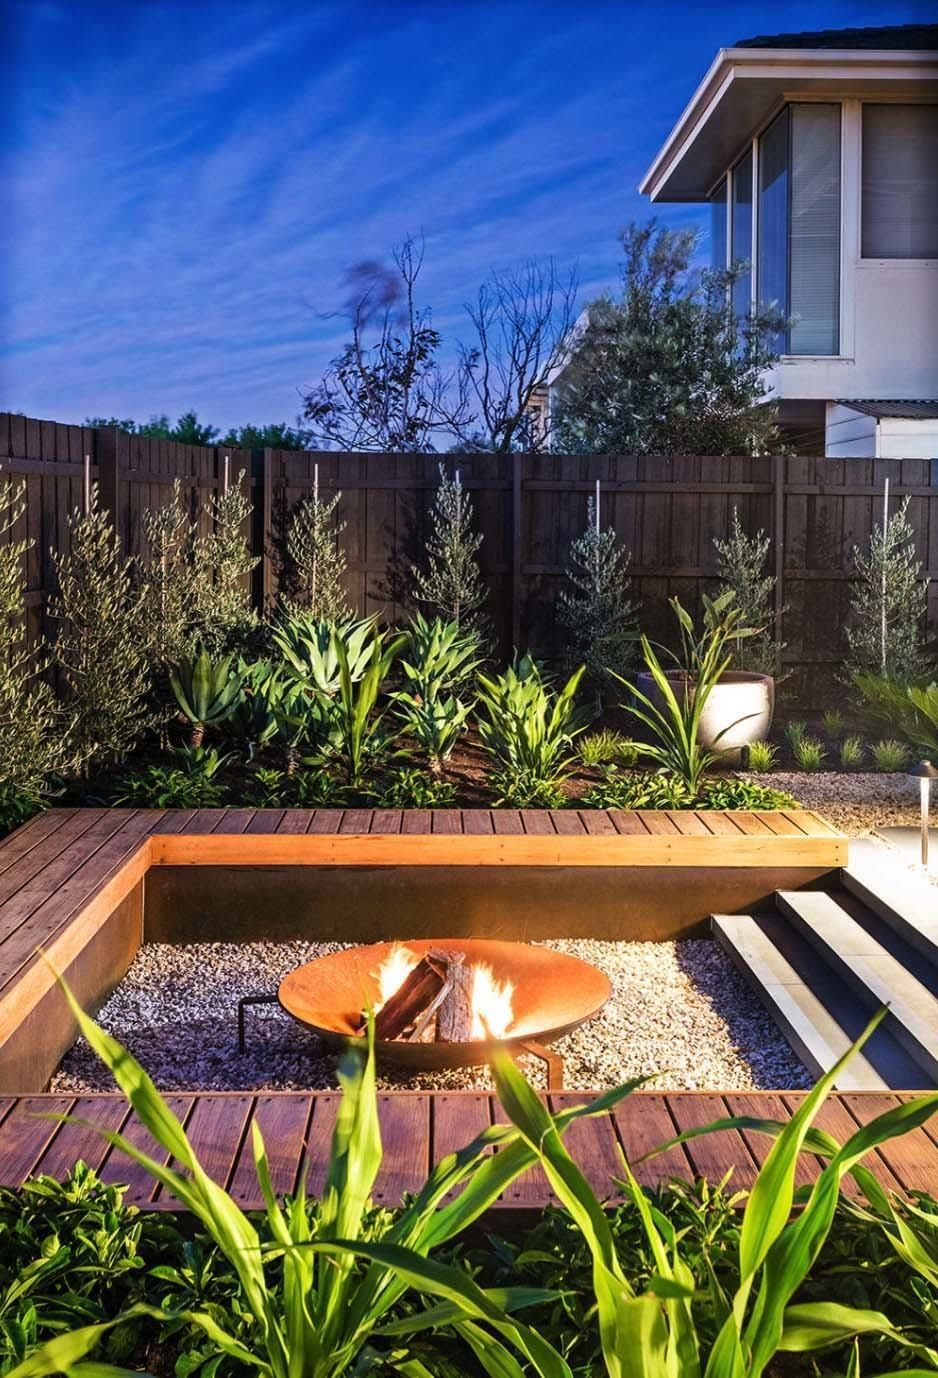 35 Modern Front Yard Landscaping Ideas With Urban Style: 35 Modern Outdoor Patio Designs That Will Blow Your Mind